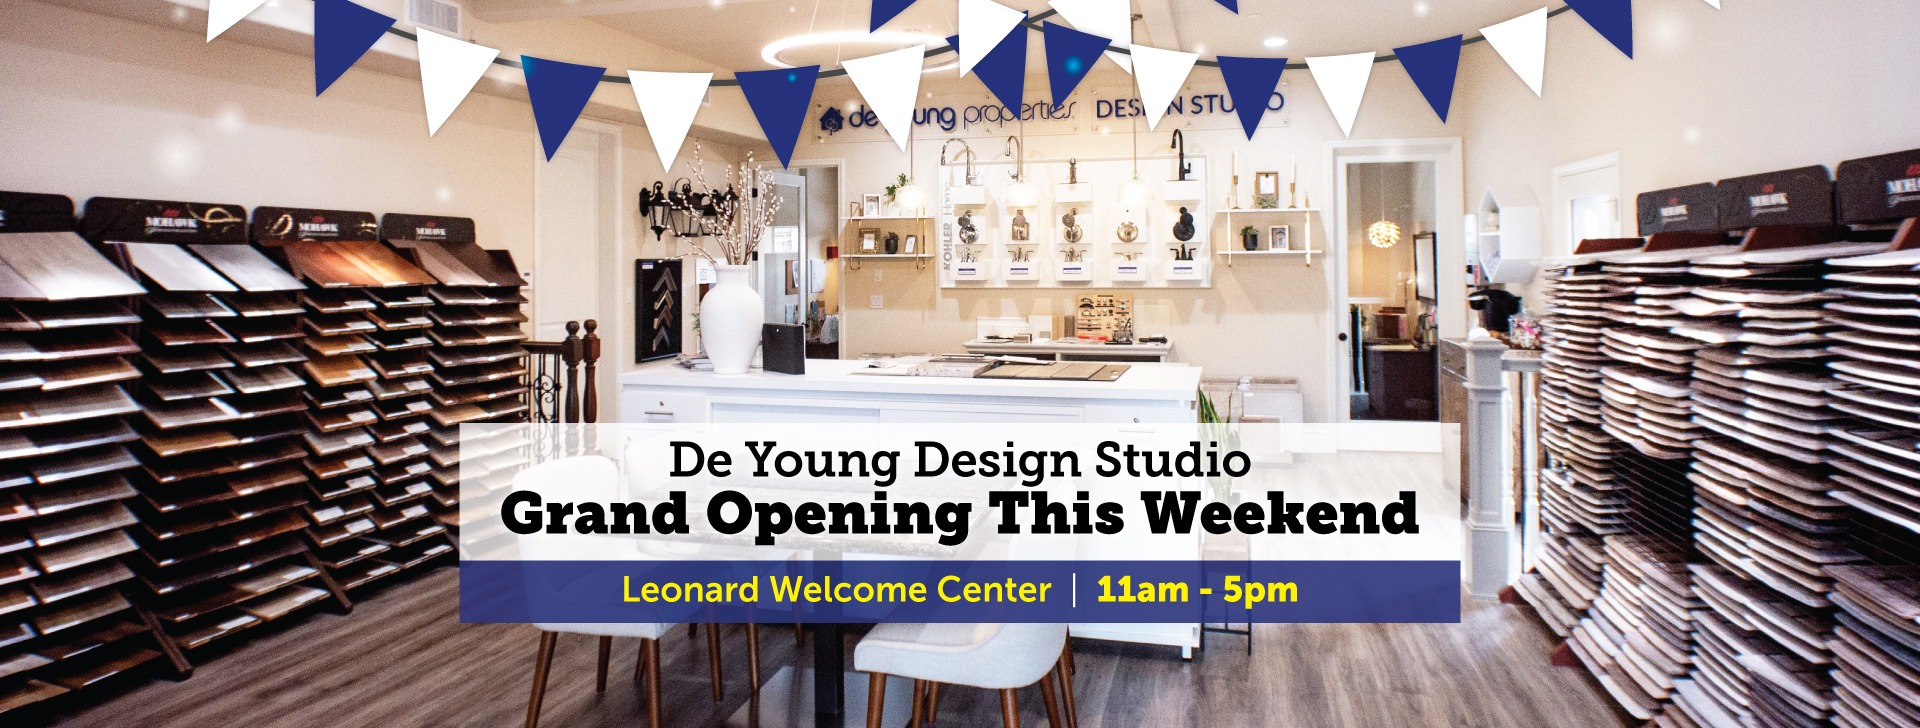 Tour The New, Exclusive De Young Design Studio At The Grand Opening Event This Weekend